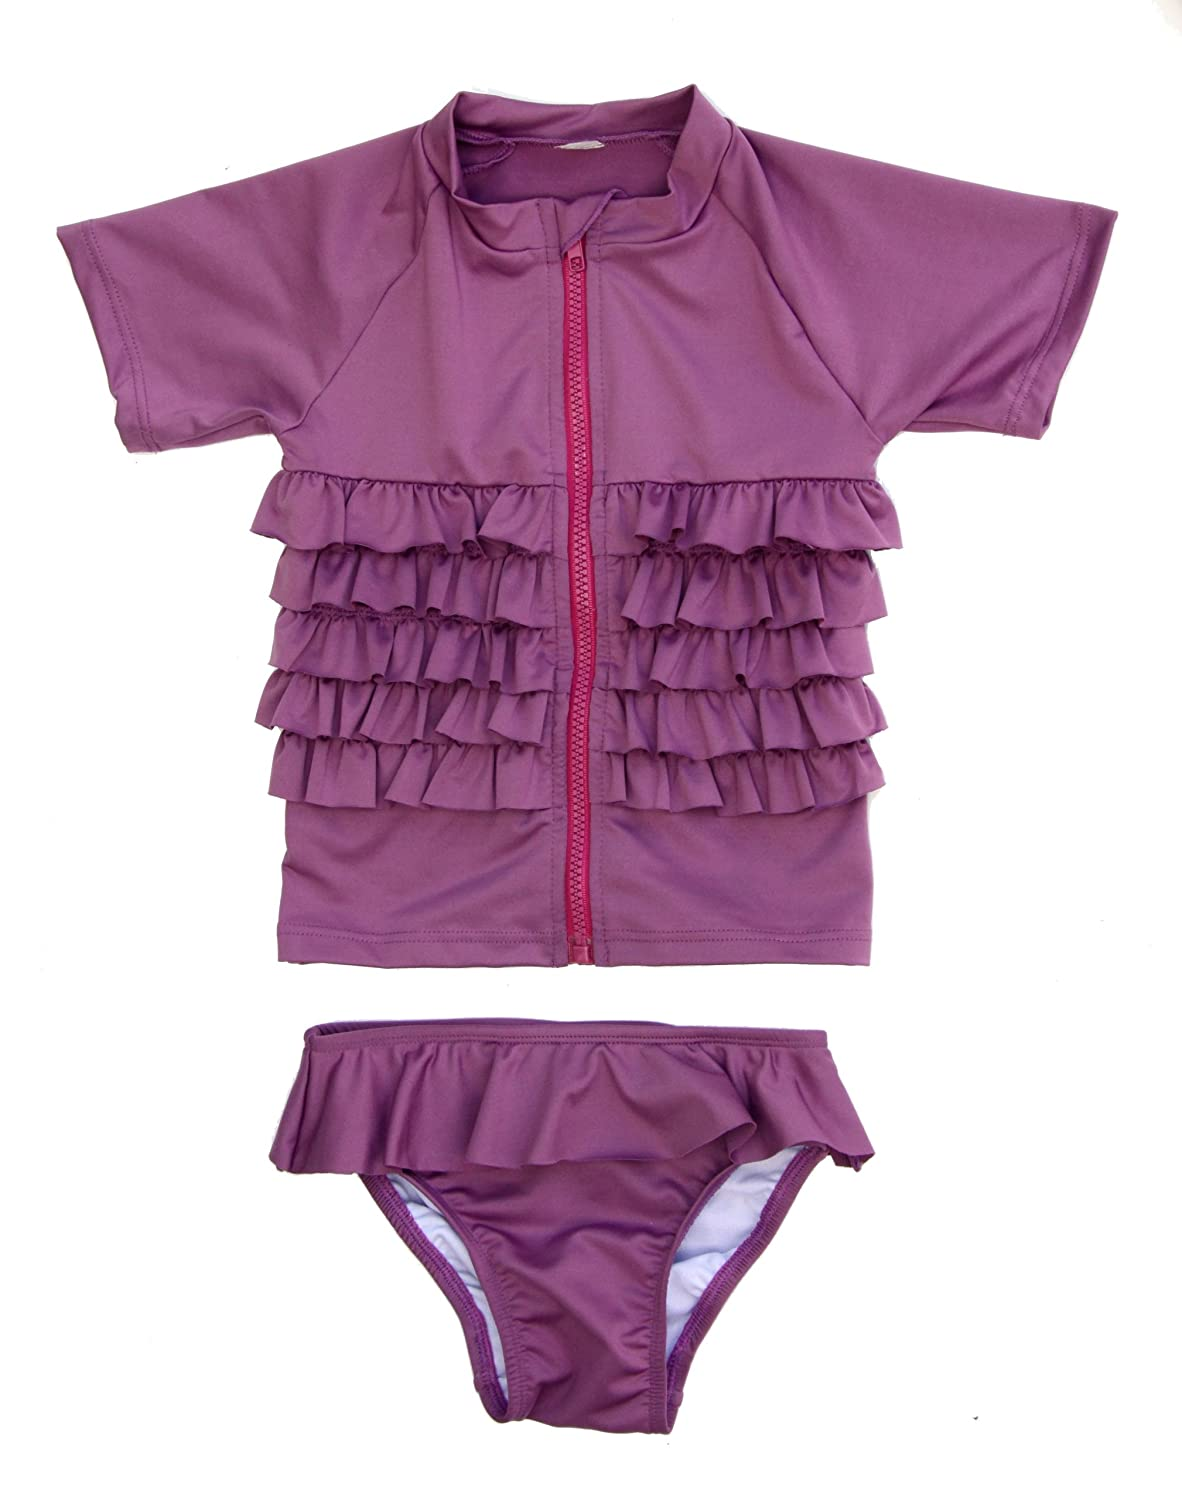 SwimZip Little Girl Rash Guard Swimwear Set Ruffle Me Pretty Purple 5T 45001/5YRS